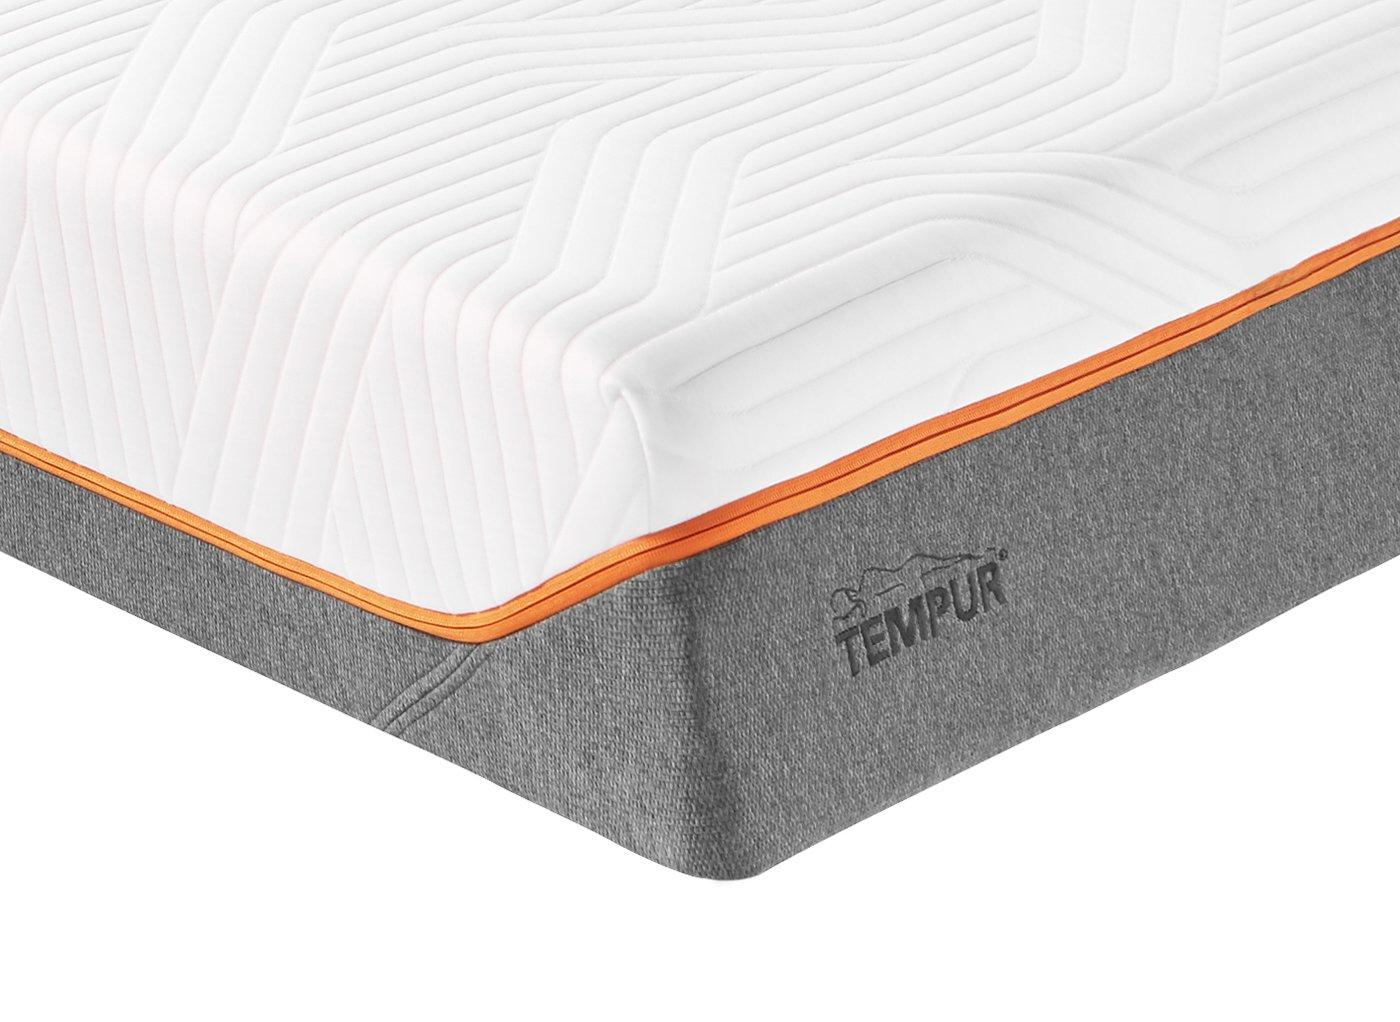 Tempur Cooltouch Original Elite Adjustable Mattress - Medium Firm 4'0 Small double